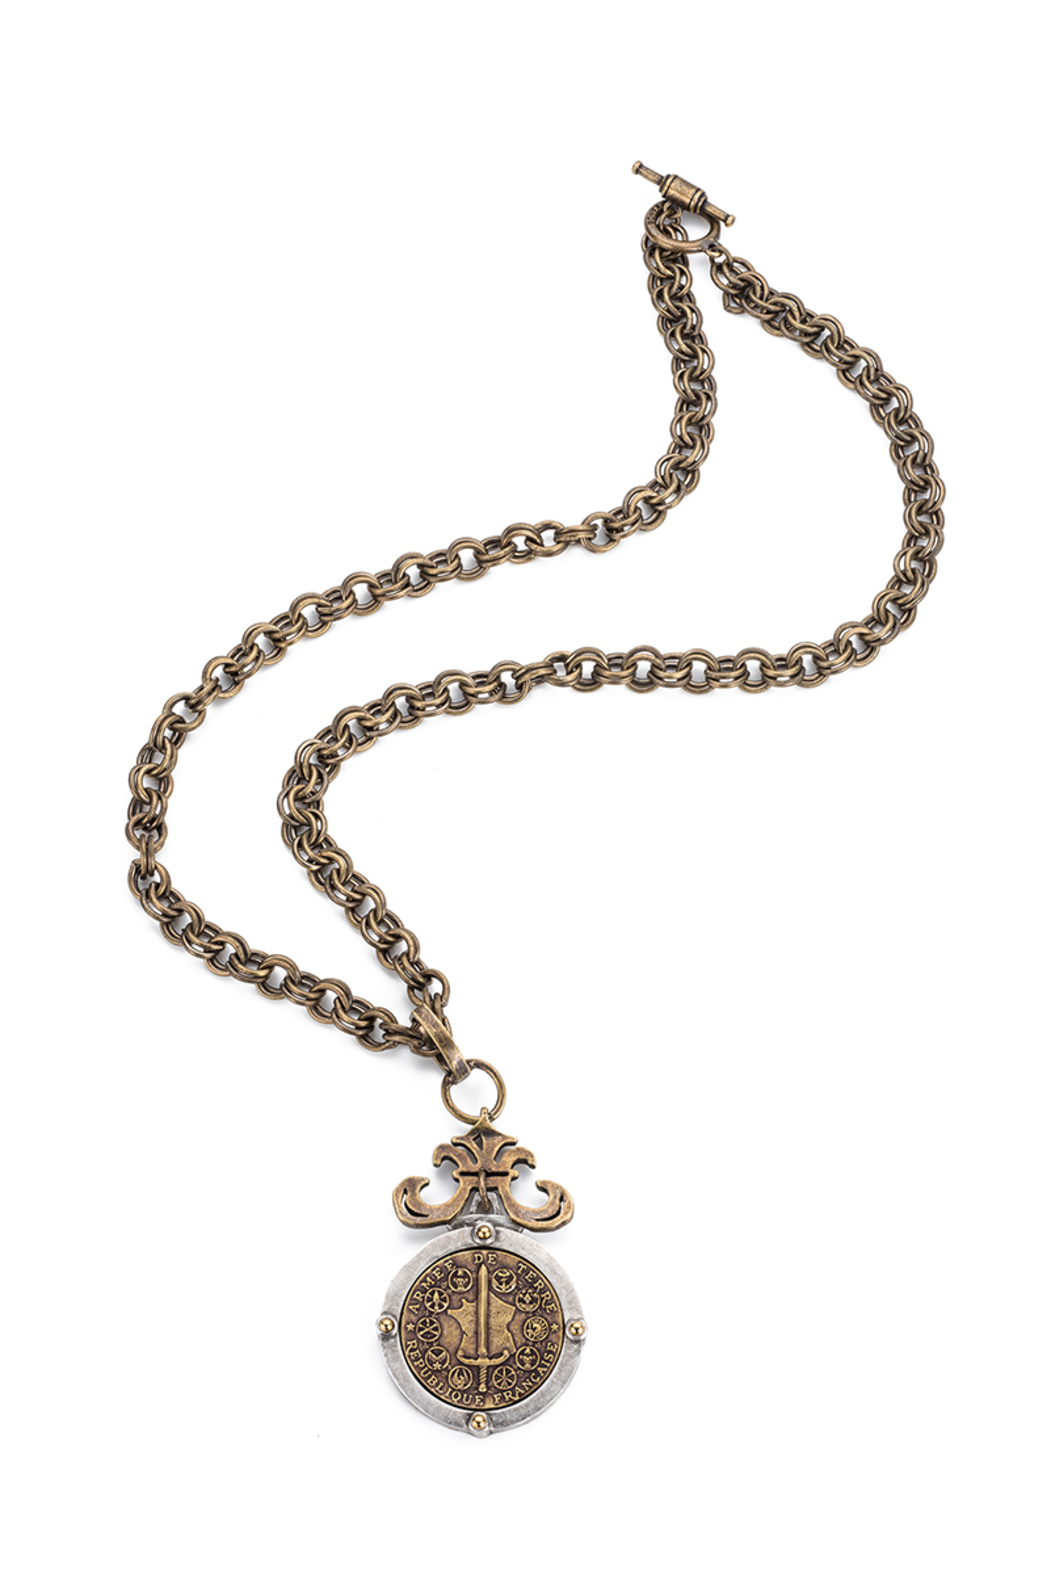 French Kande provence chain necklace with DU TERRE medallion - Main Image